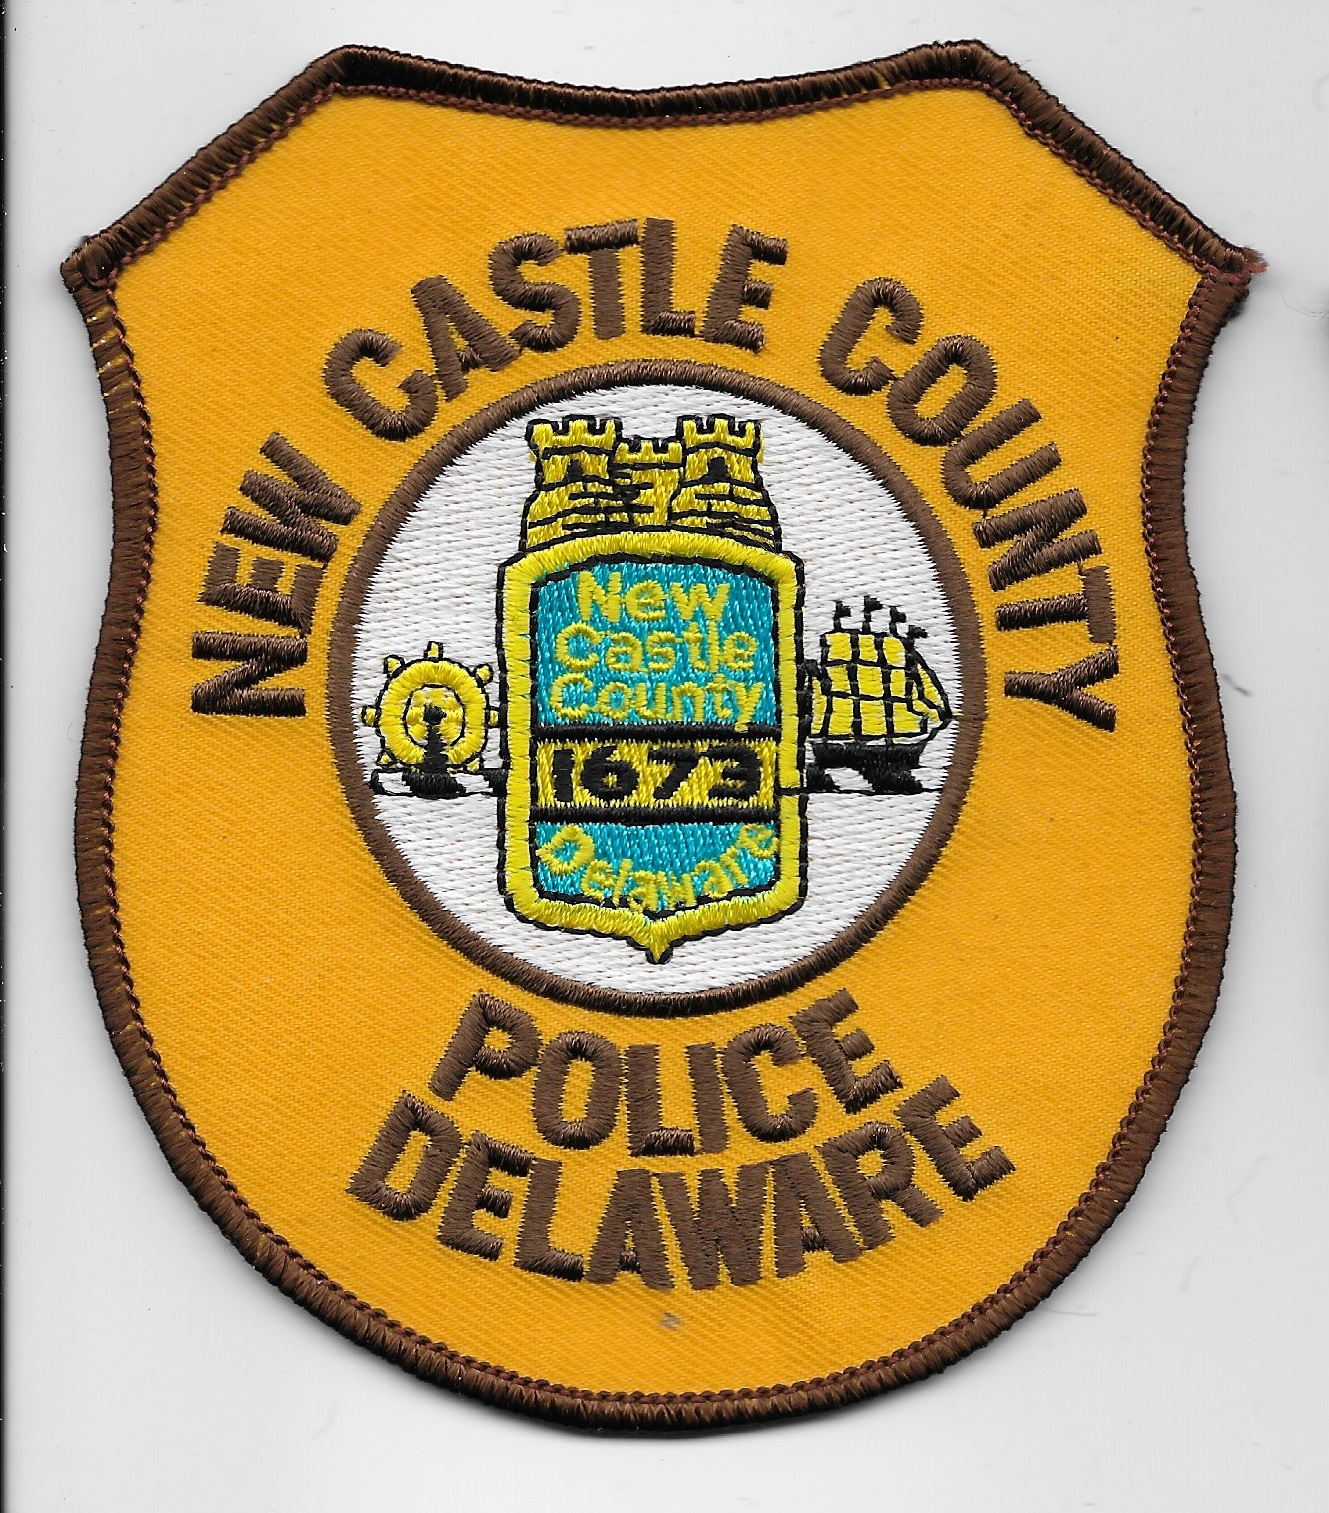 New Castle Police DE older